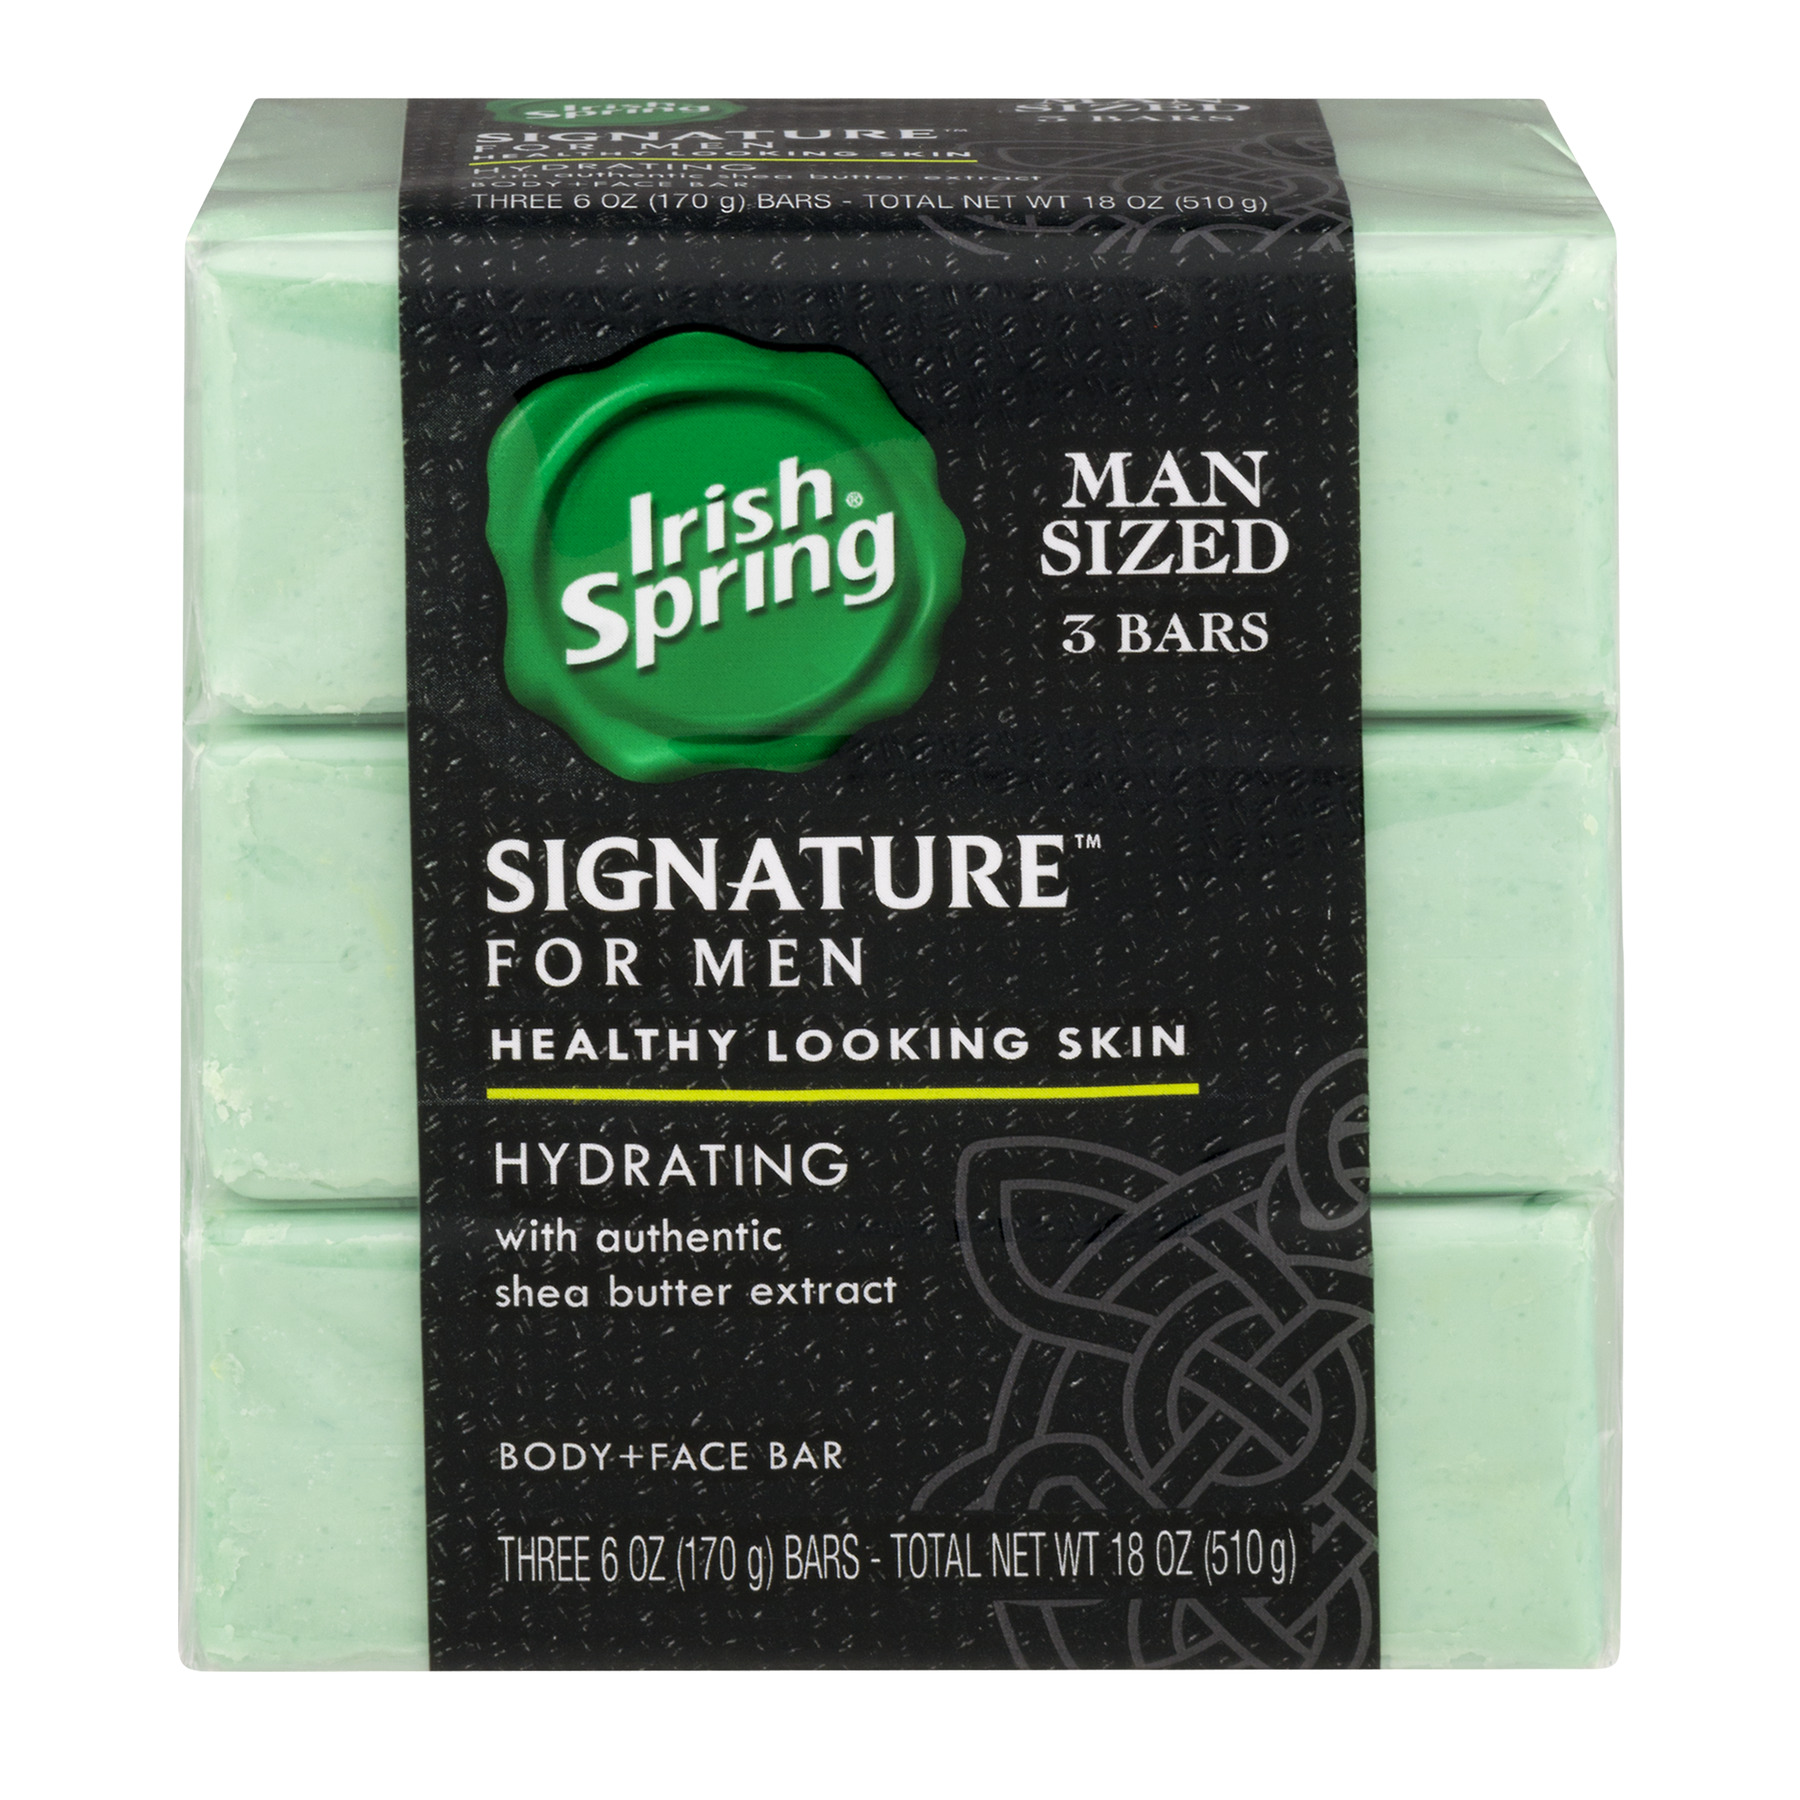 Irish Spring Signature for Men Hydrating Bar Soap - 3 Count